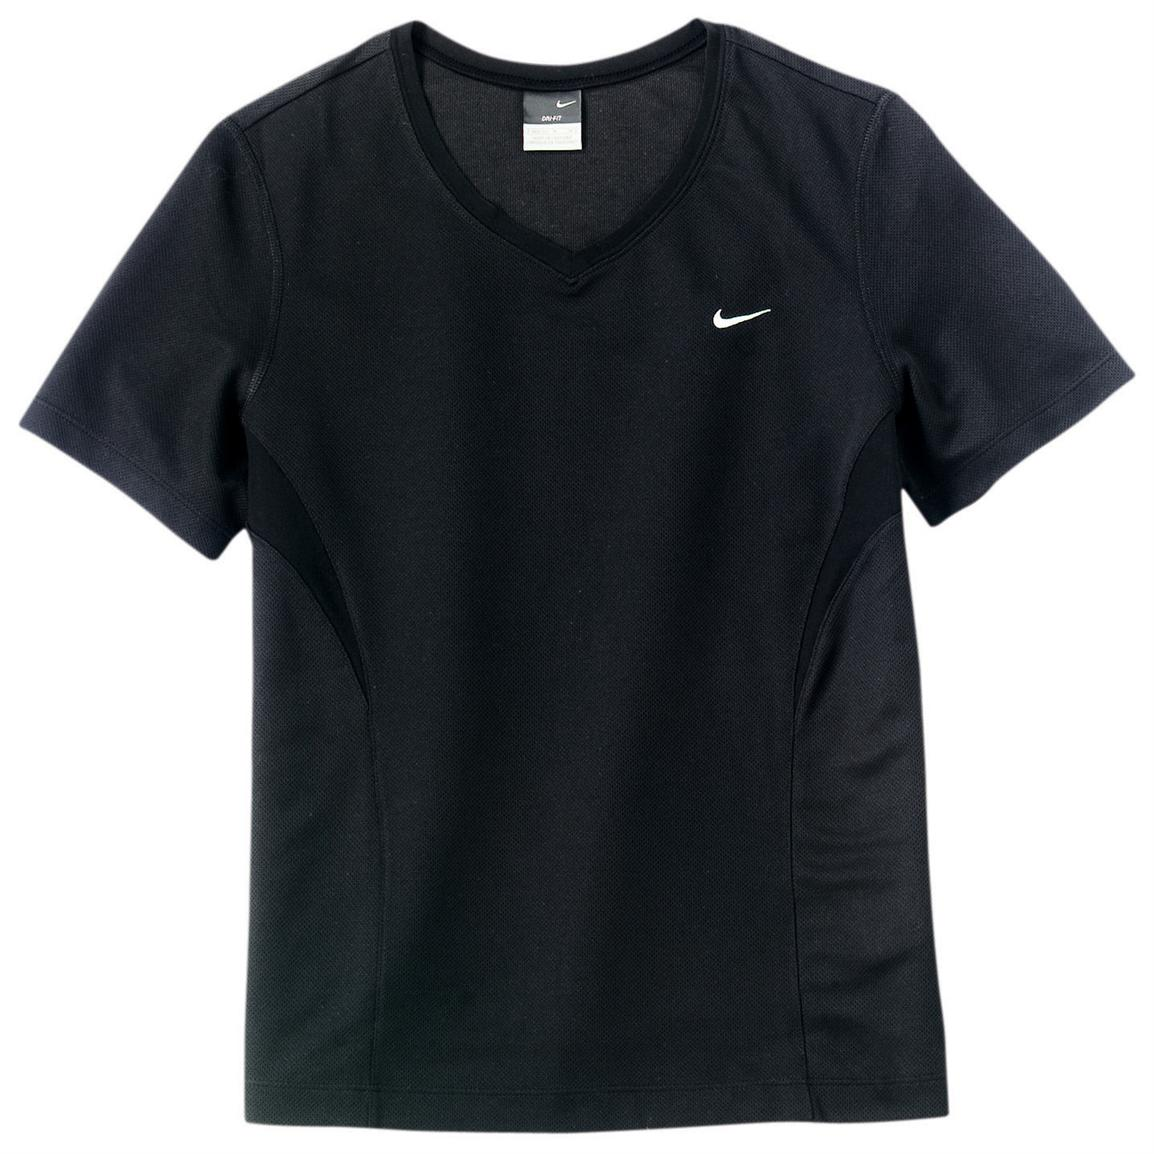 Women's Nike Short-Sleeved Base Layer Top